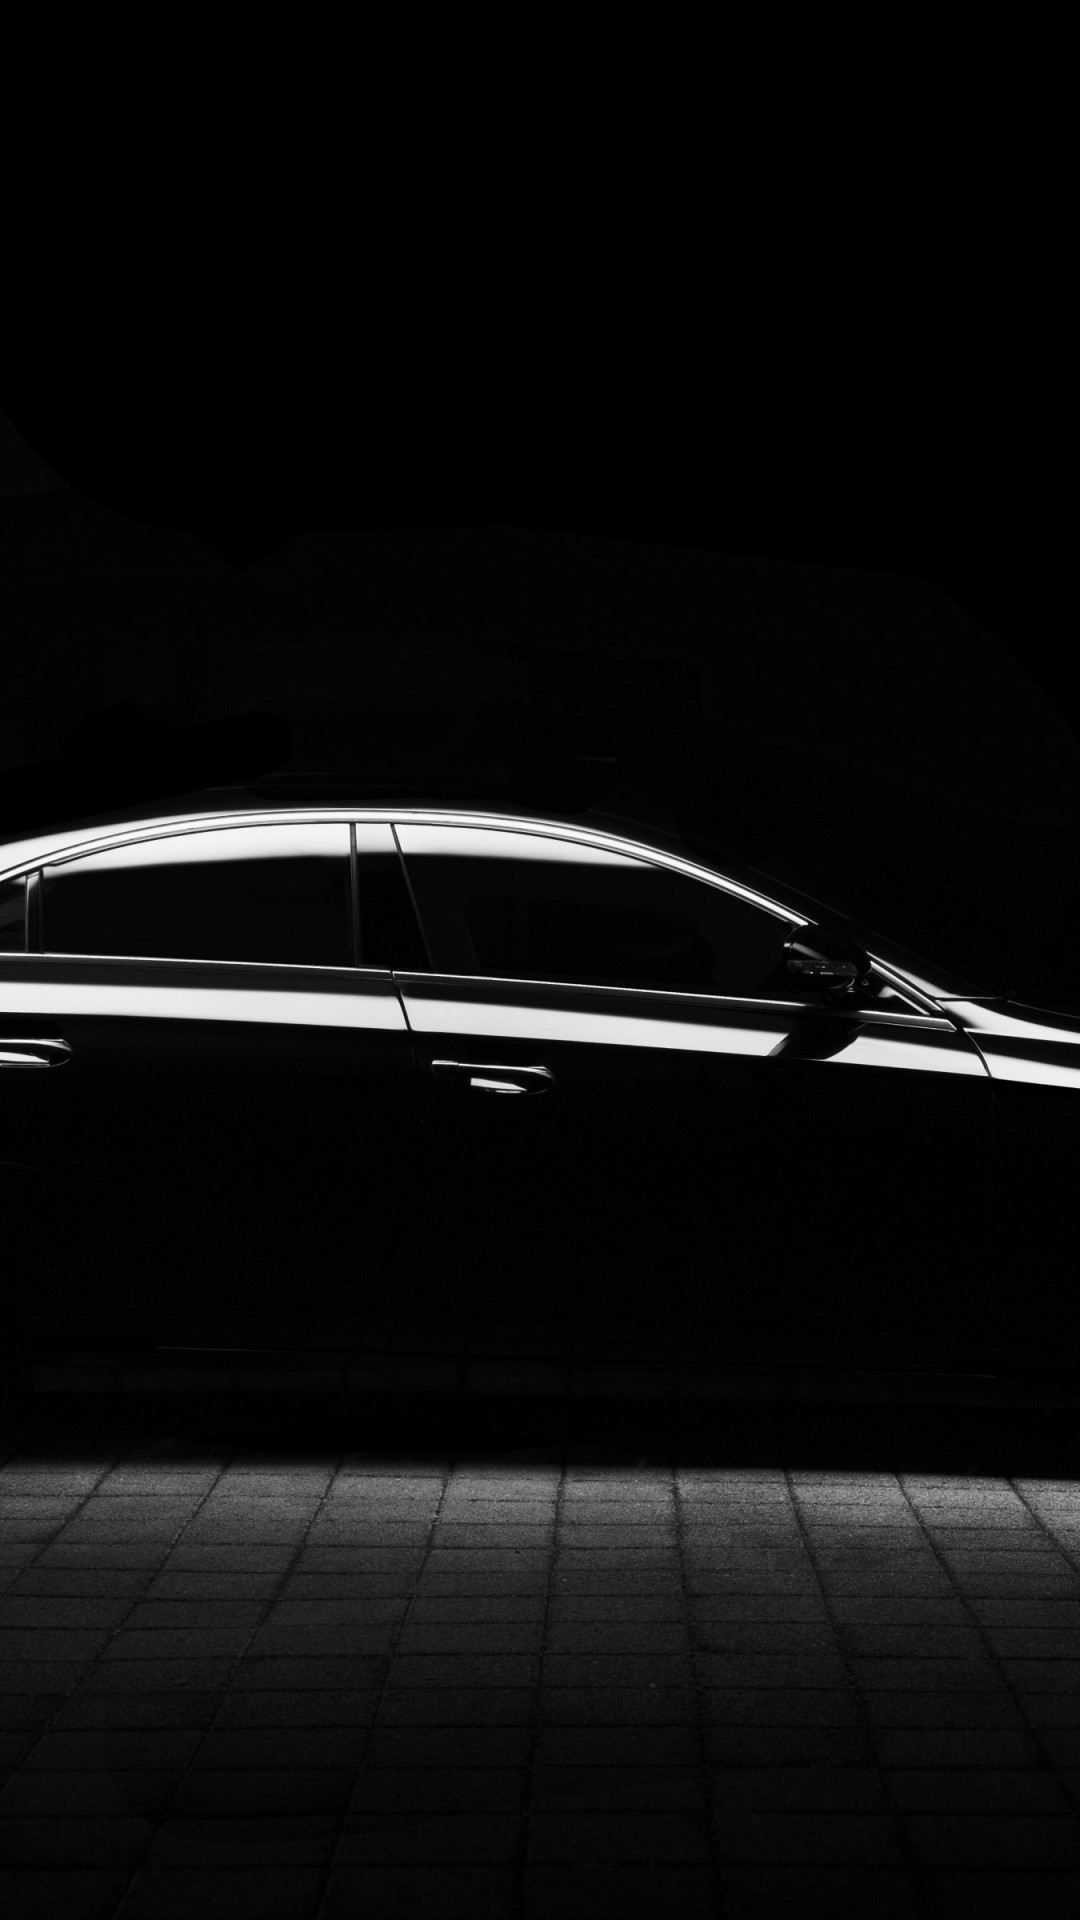 Silhouette of a Mercedes car | 1080x1920 wallpaper